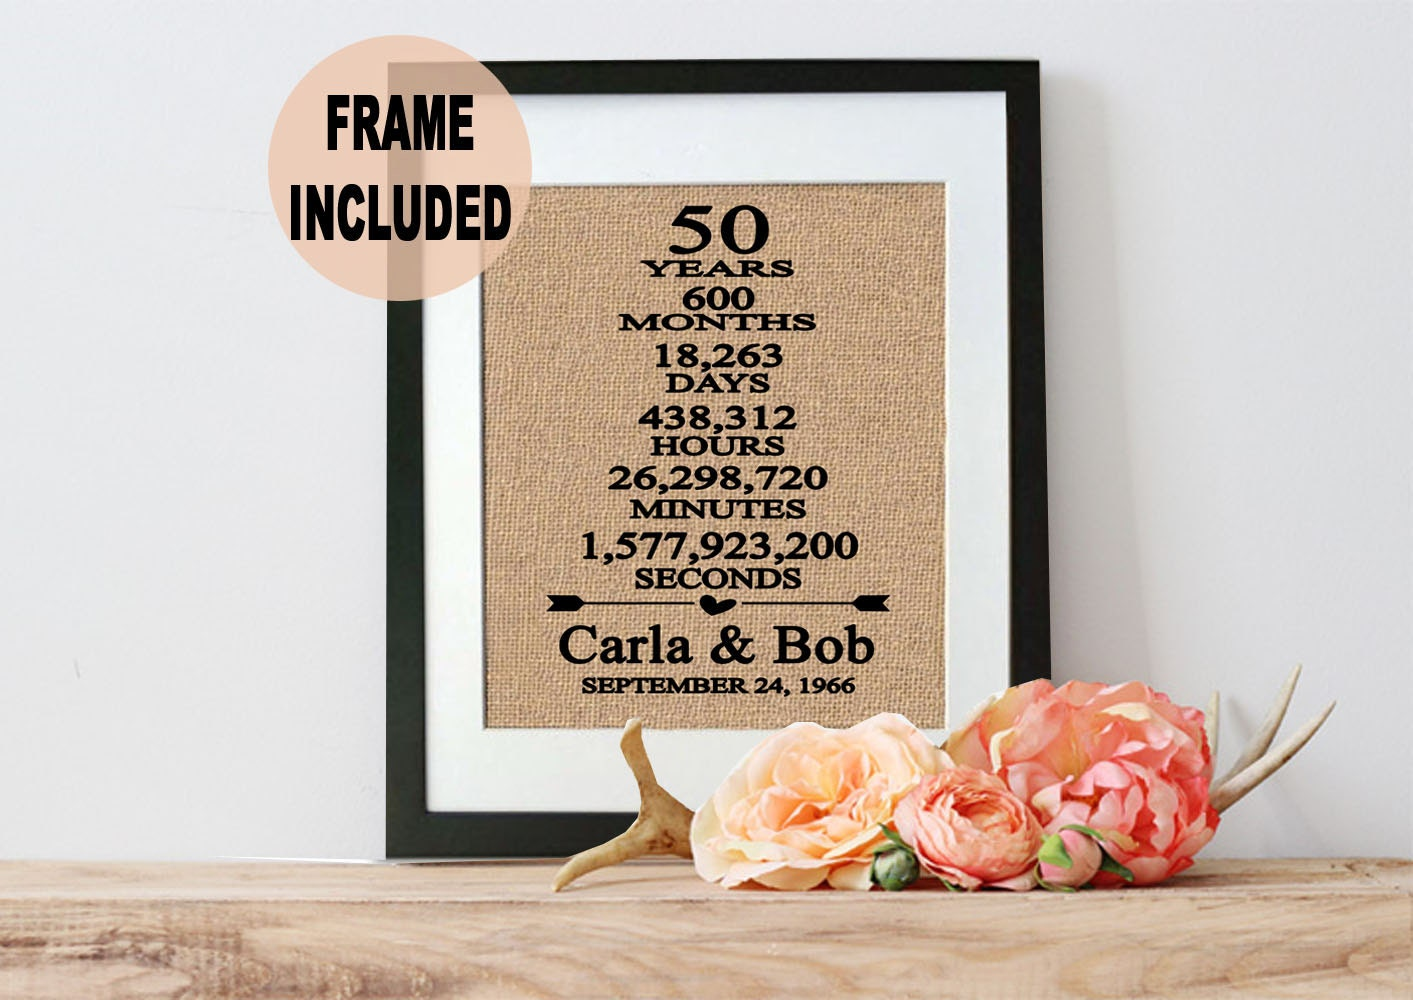 Fiftieth Wedding Anniversary Gifts: 50th Wedding Anniversary Gift/ 50th Anniversary Gift/ 50 Years